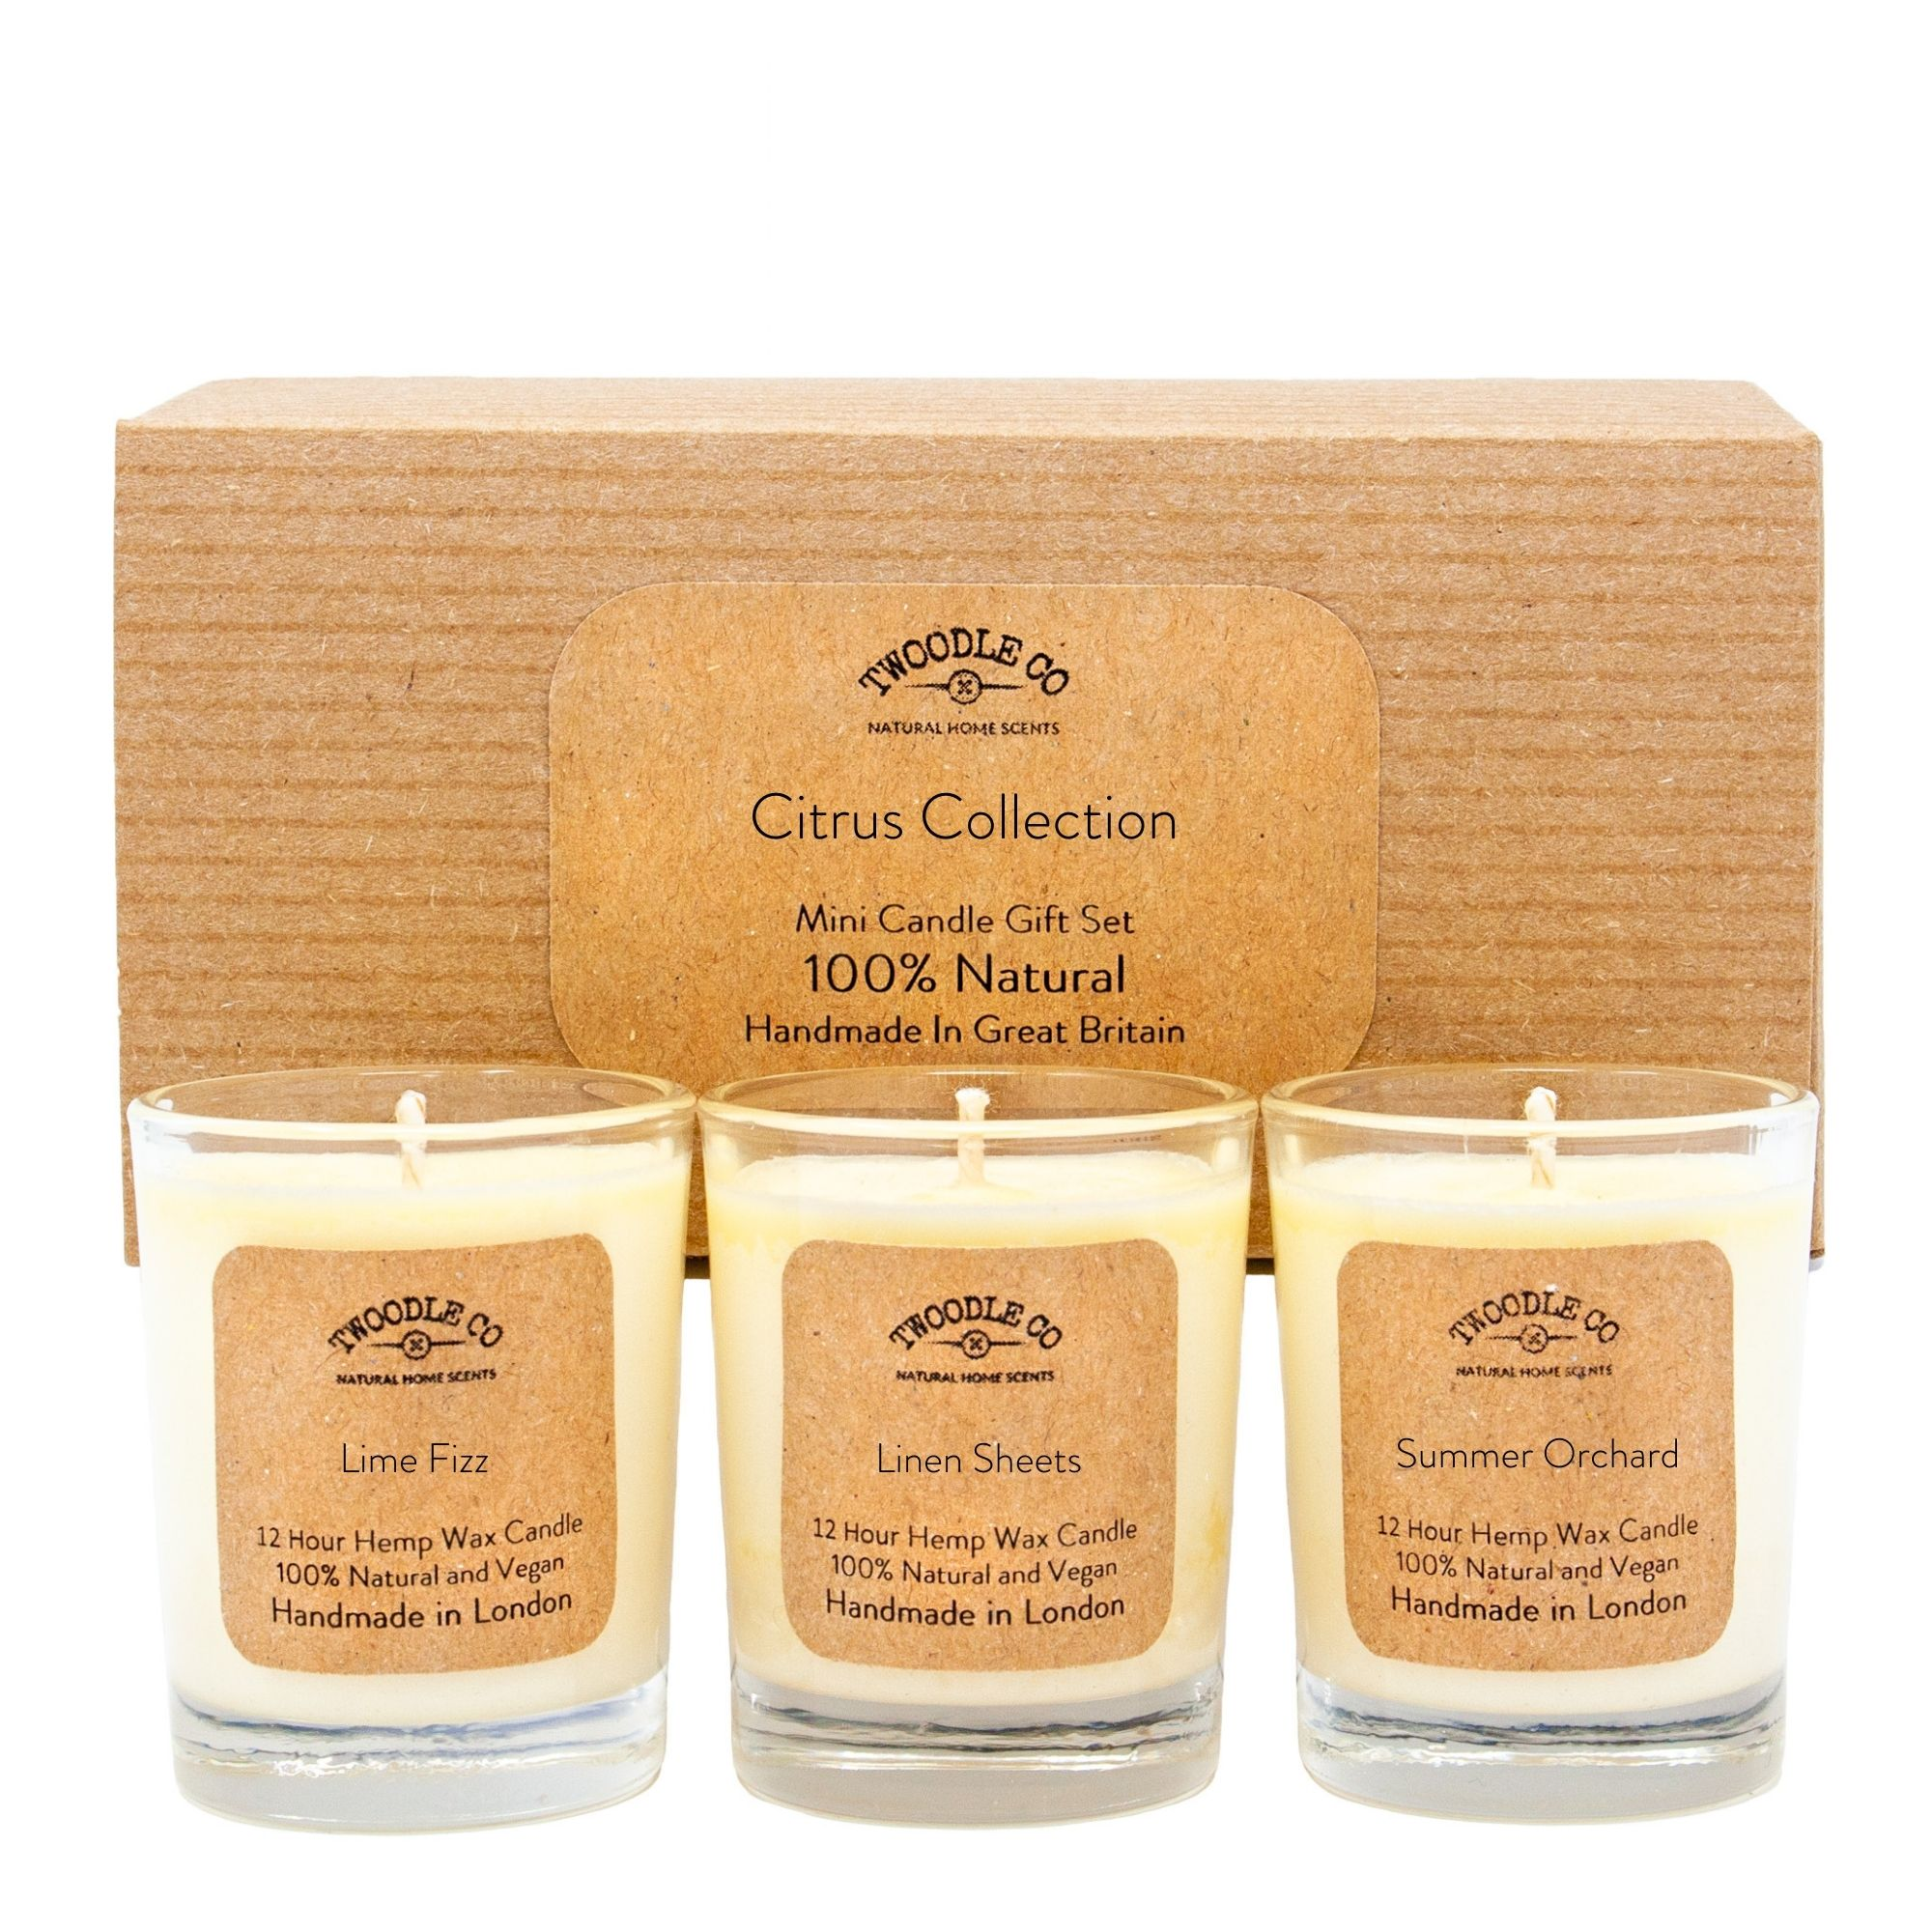 Citrus Collection Mini triple candle Gift Set by twoodle co natural home scents1